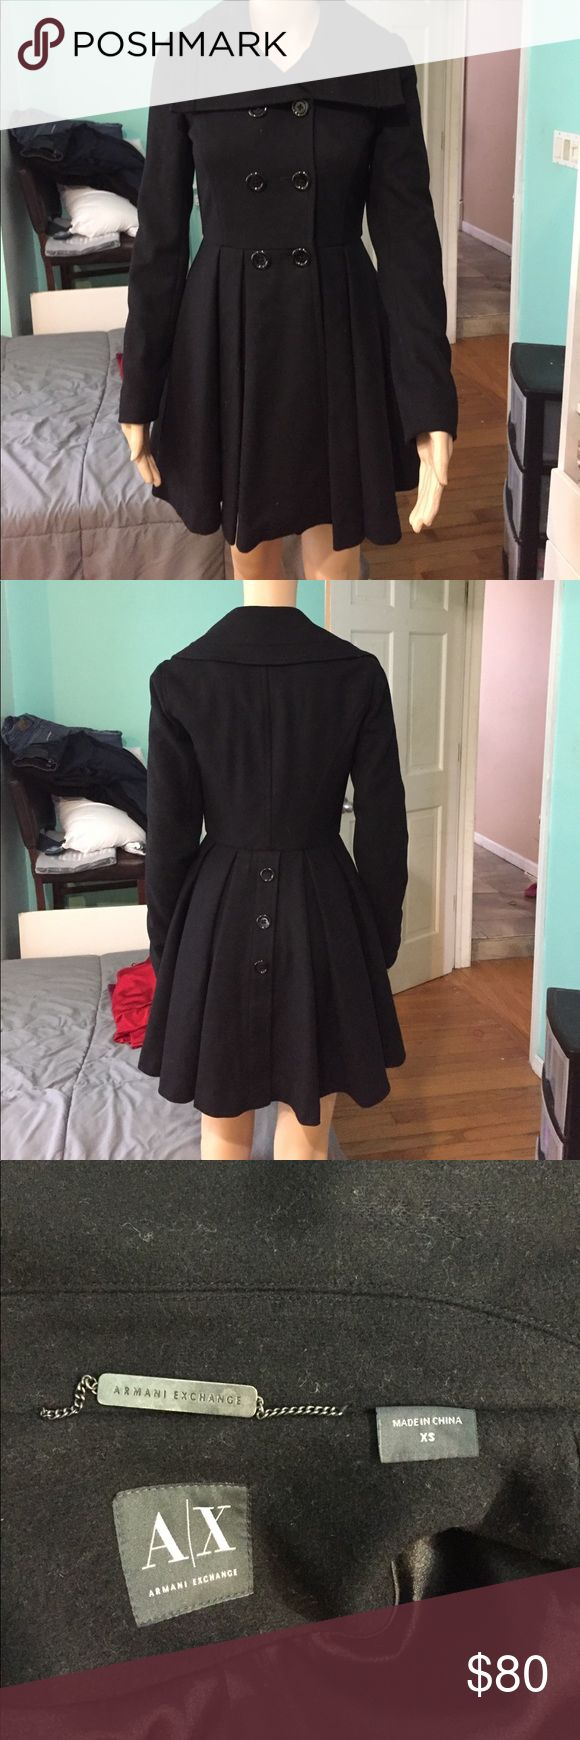 Armani Exchange Coat Excellent condition.  Used two or three times A/X Armani Exchange Jackets & Coats Pea Coats